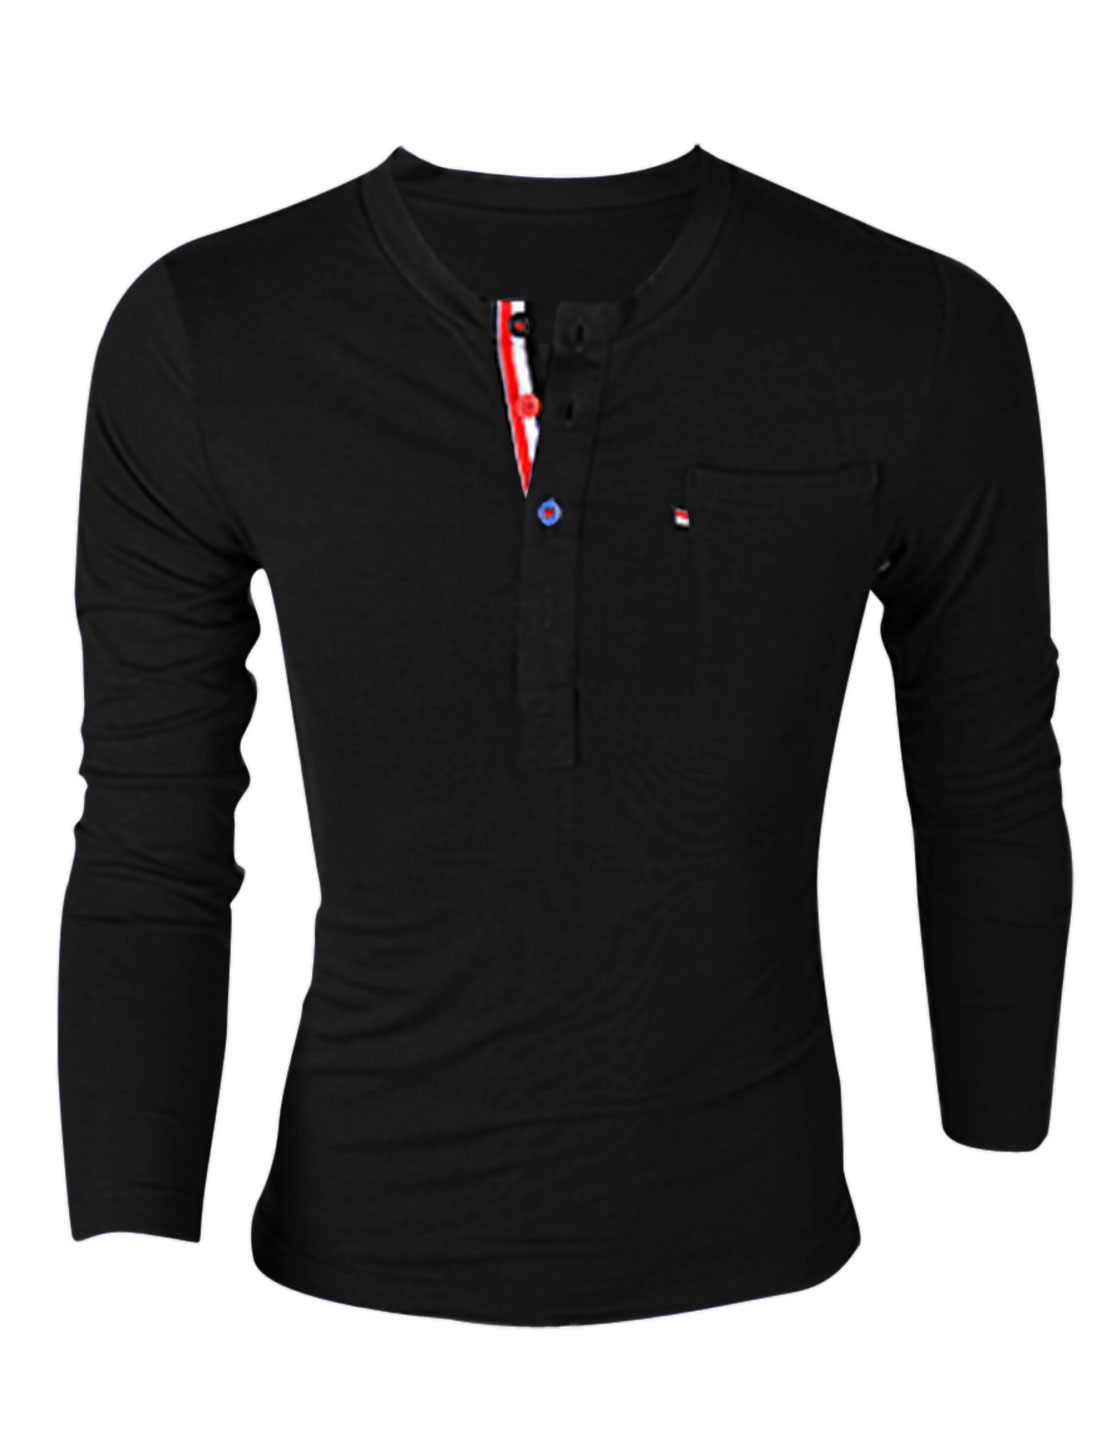 Men Fashion Style Round Neck One Chest Pocket Casual Henley Shirt Black M